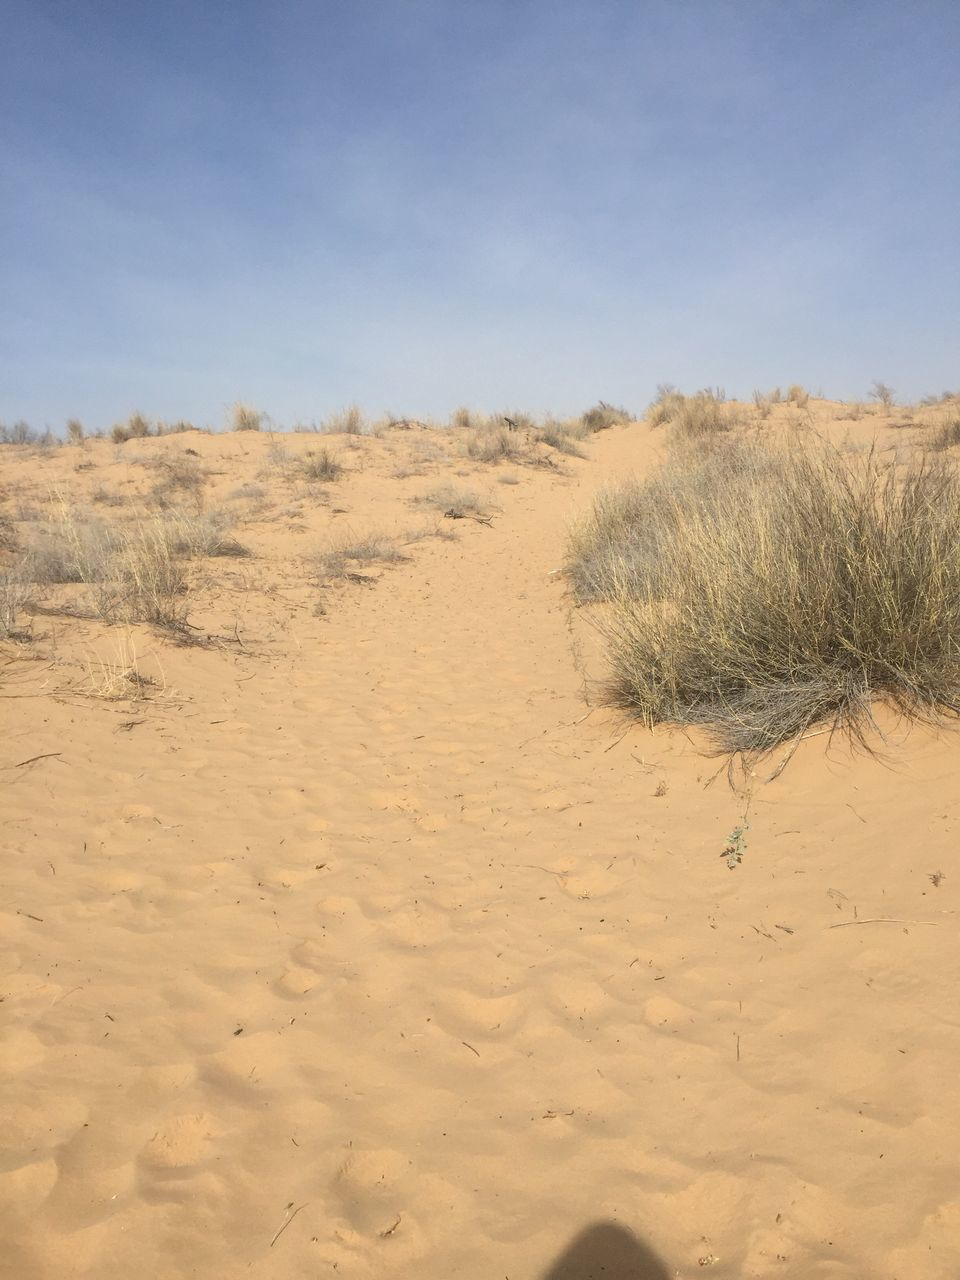 sand, nature, tranquility, landscape, tranquil scene, sand dune, day, sky, scenics, outdoors, arid climate, beauty in nature, no people, desert, beach, clear sky, tree